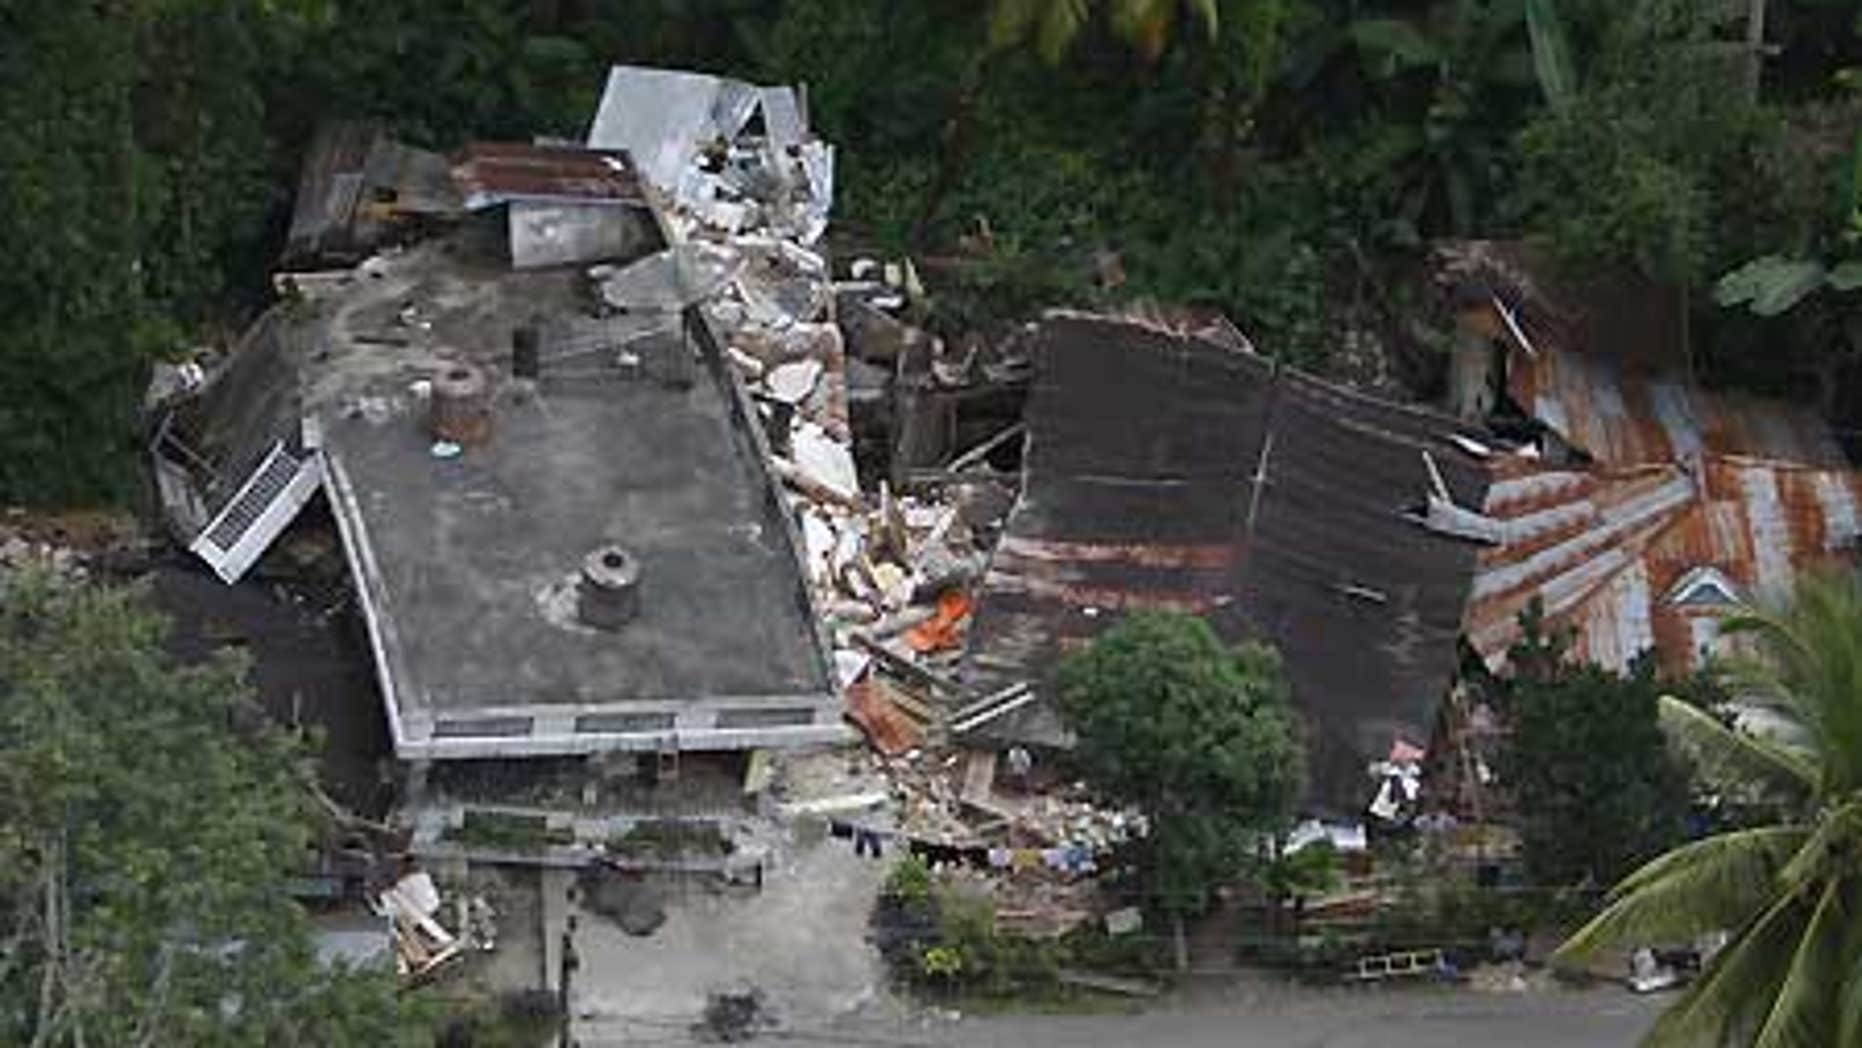 Oct. 3: Damaged houses are seen in this aerial image of an area affected by earthquake-triggered landslide in Padang Pariaman, West Sumatra.